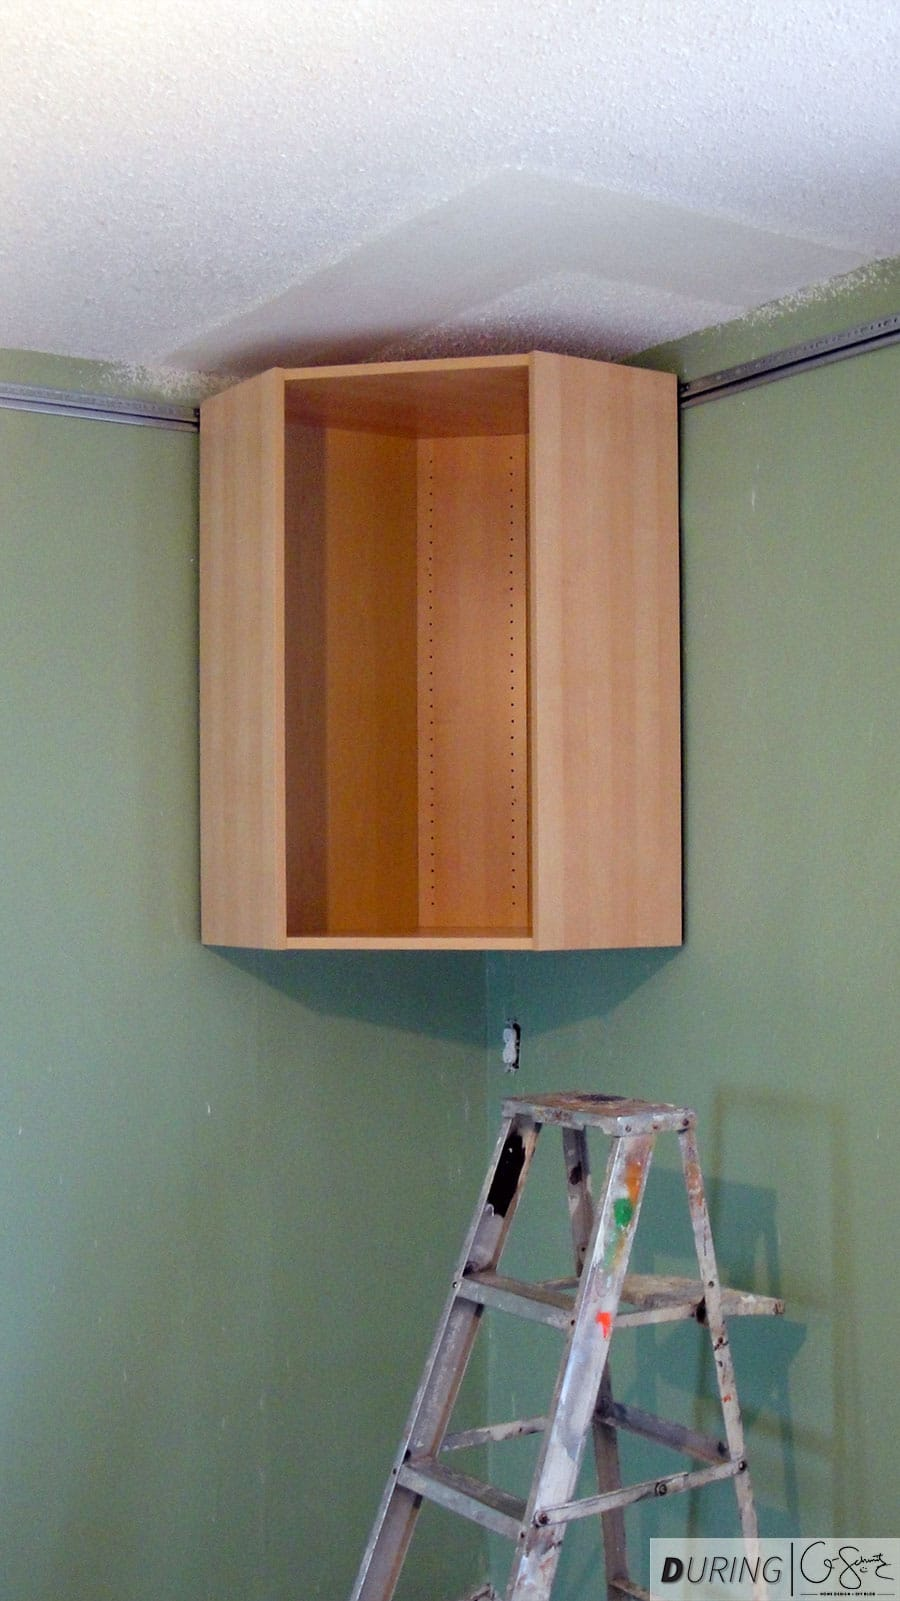 Installing ikea wall cabinets madness method - Ikea corner cabinet door installation ...